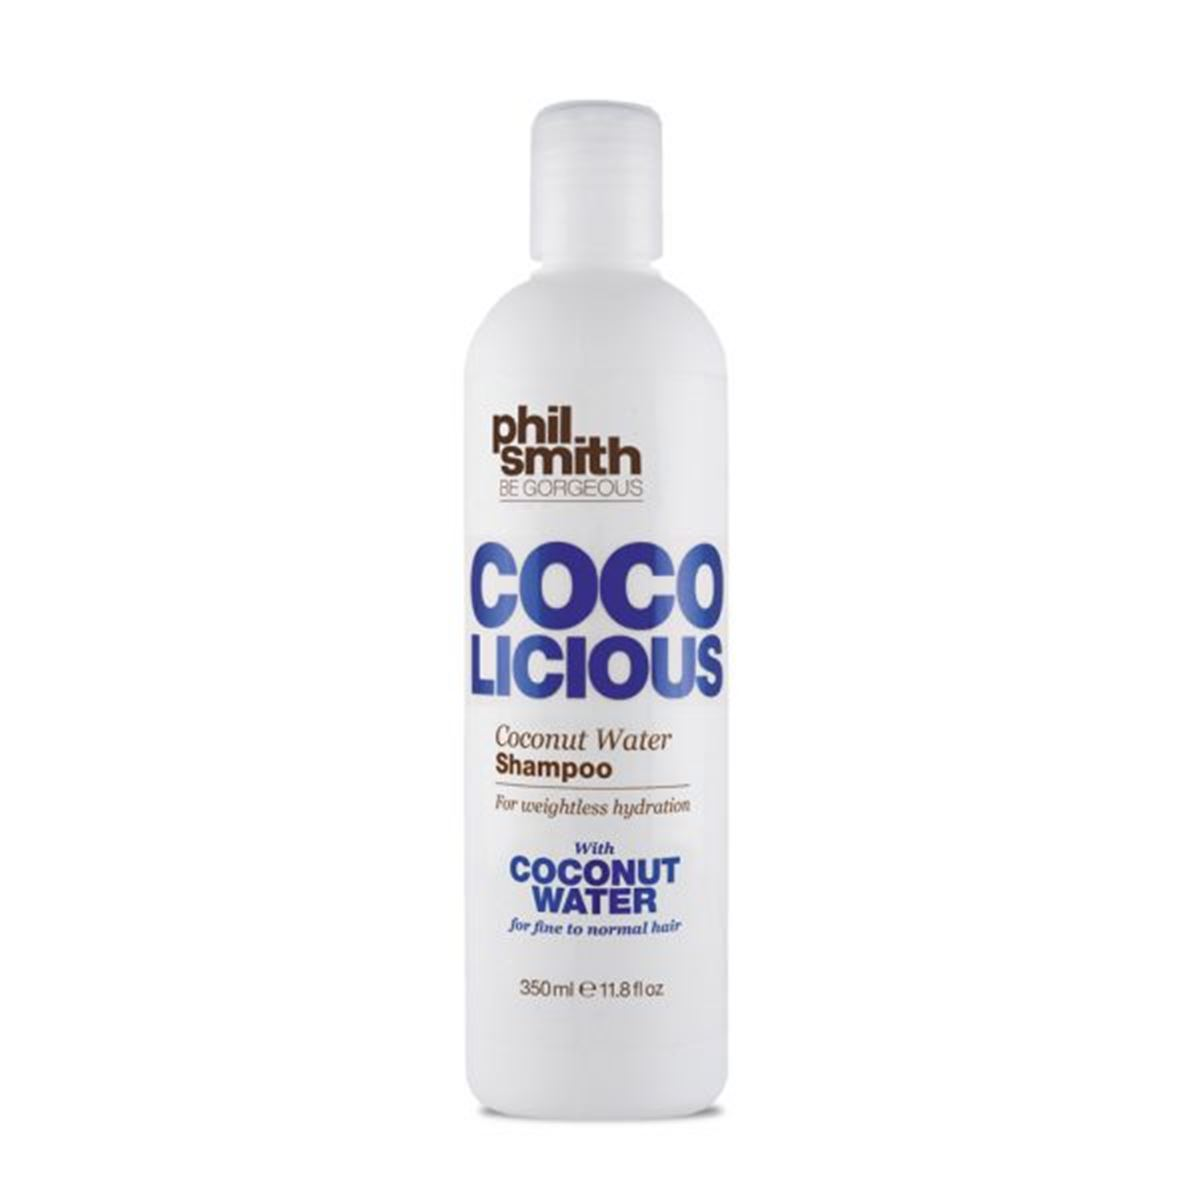 Phil Smith Coco Licious Coconut Water Şampuan 350 ml